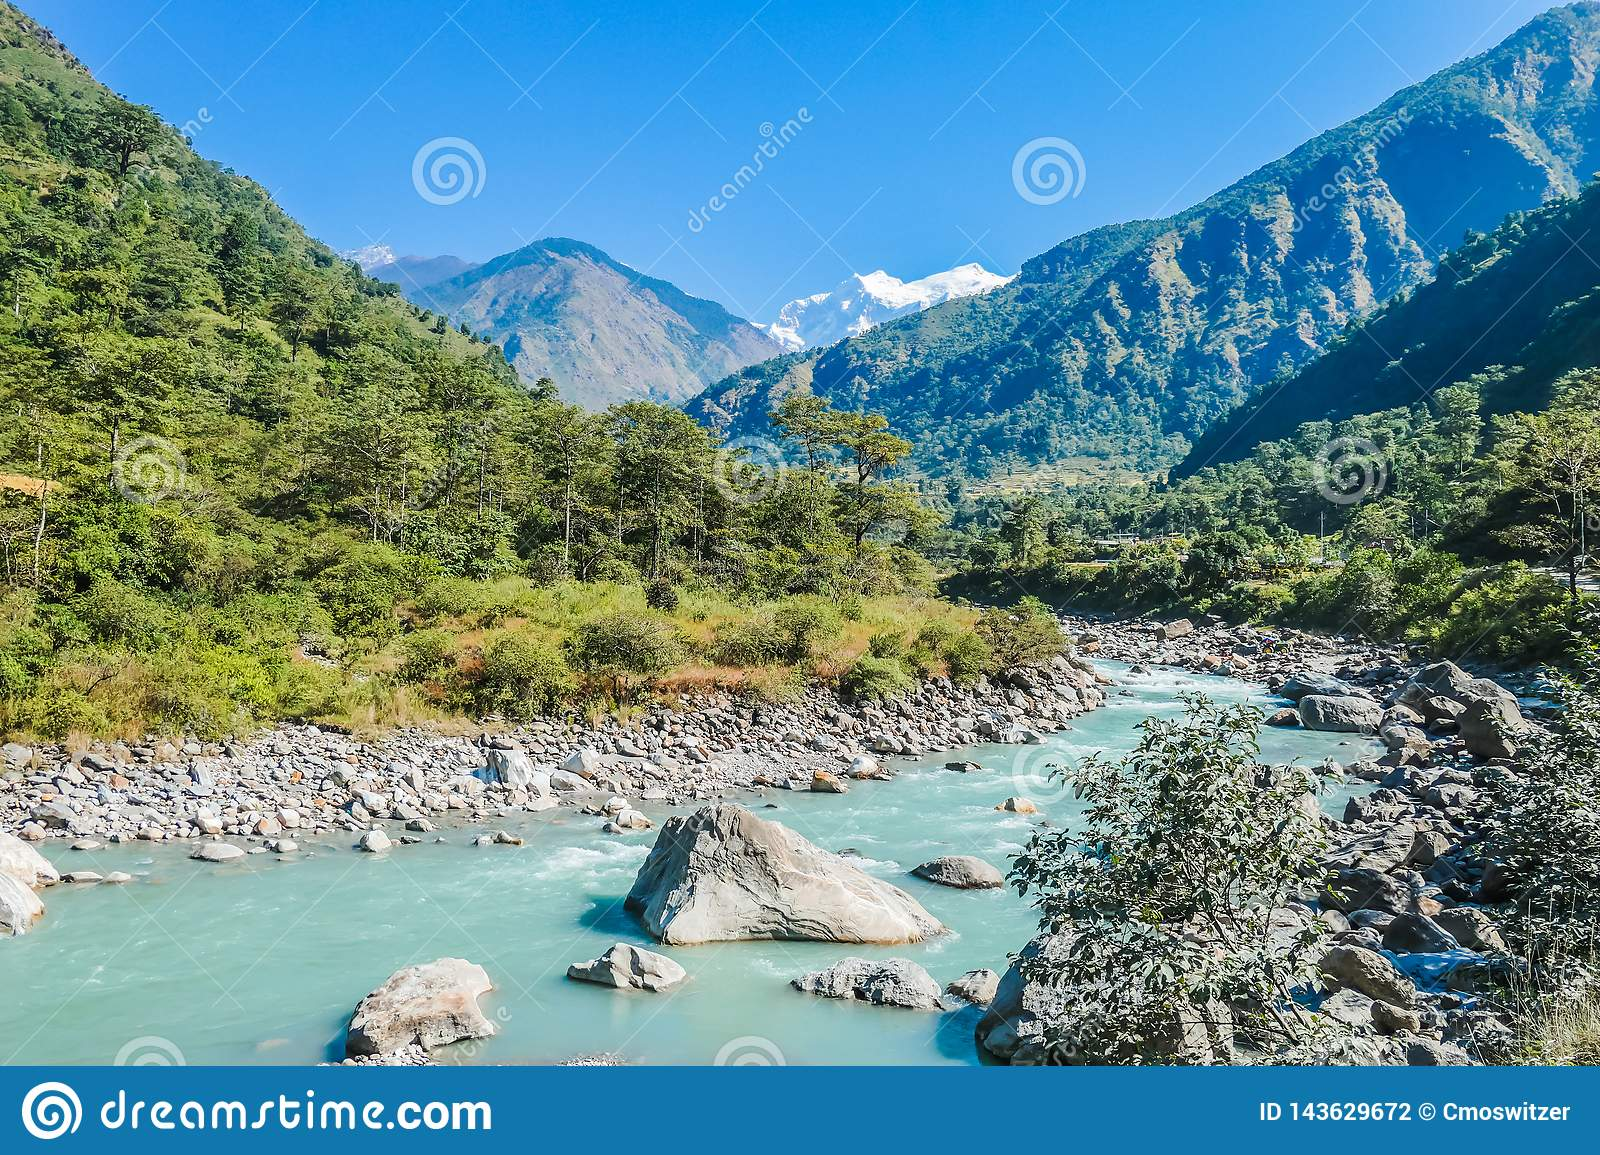 Nepal - View on the River and Mountains from Bhulbhule